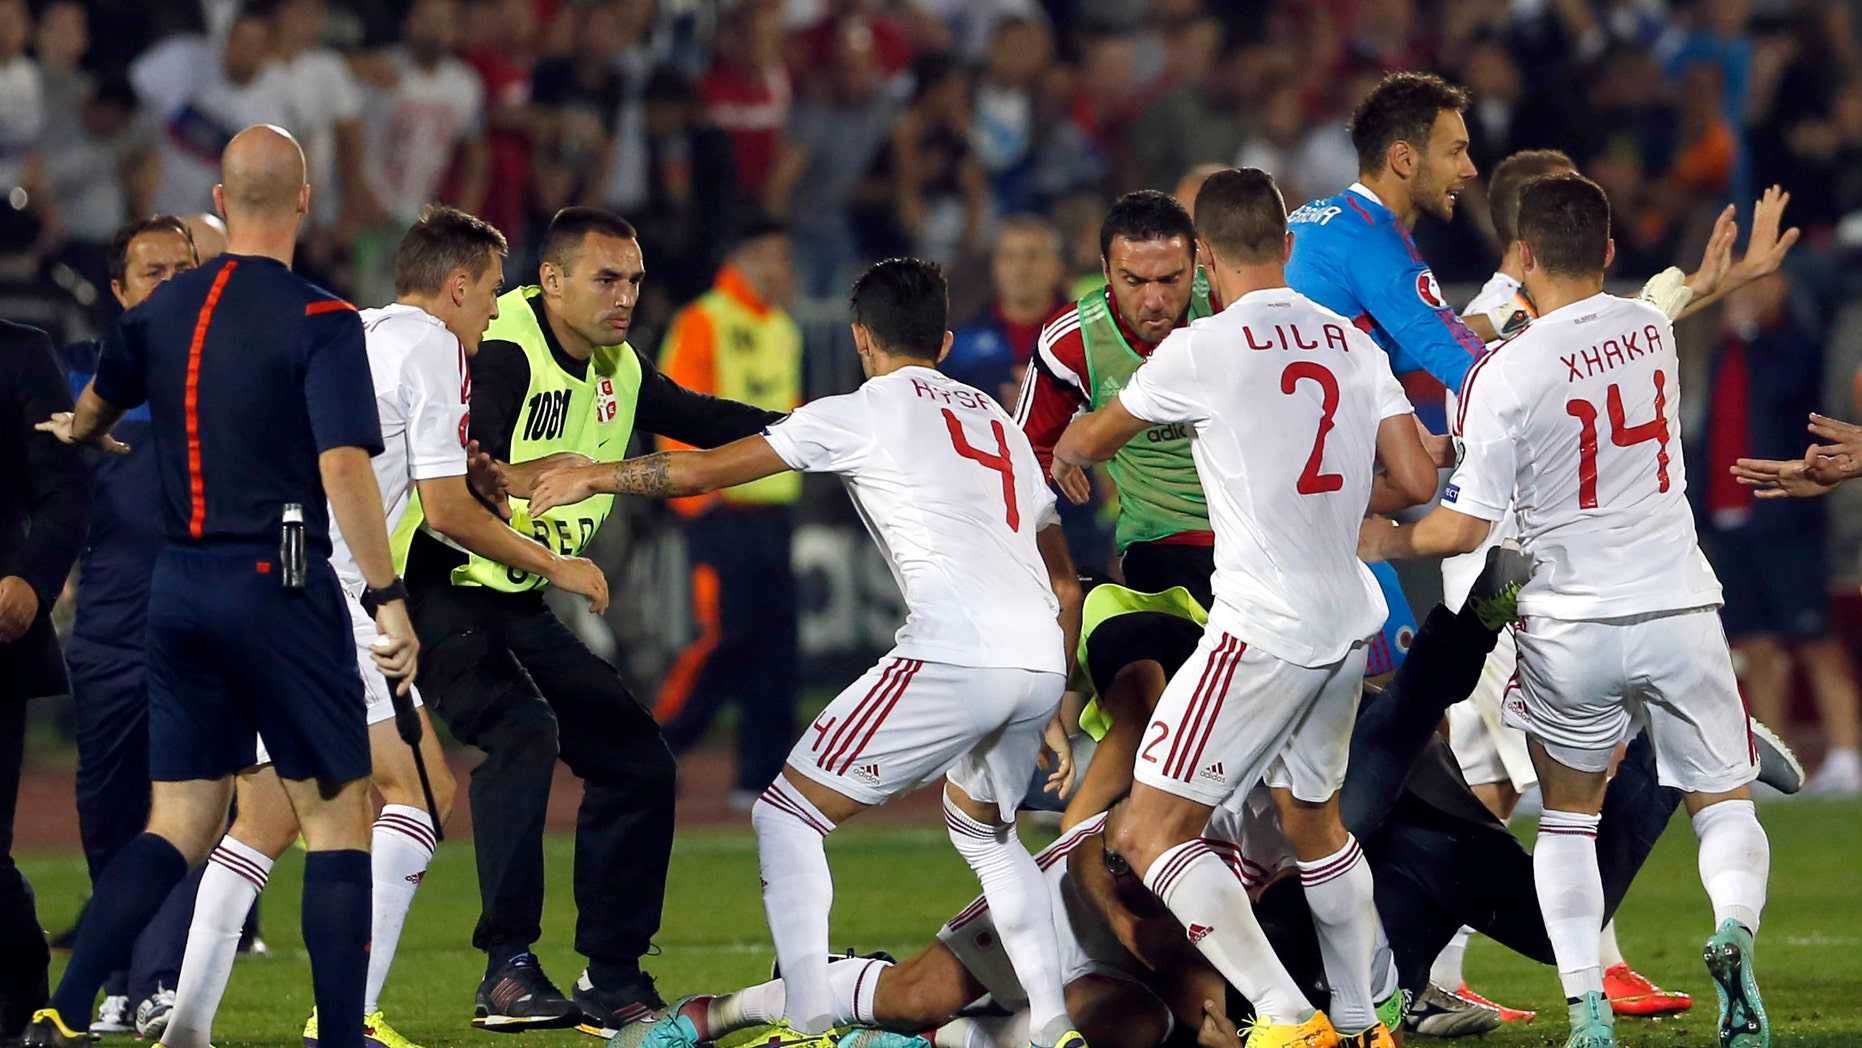 A skirmish between Serbian and Albanian players breaks out on the pitch during the Euro 2016 Group I qualifying match between Serbia and Albania in Belgrade, Serbia, Tuesday, Oct. 14, 2014. The European Championship qualifier between Serbia and Albania was suspended on Tuesday after pitch skirmishes involving players and fans over an Albanian flag that was flown above the stadium by a drone. (AP Photo/Marko Drobnjakovic)